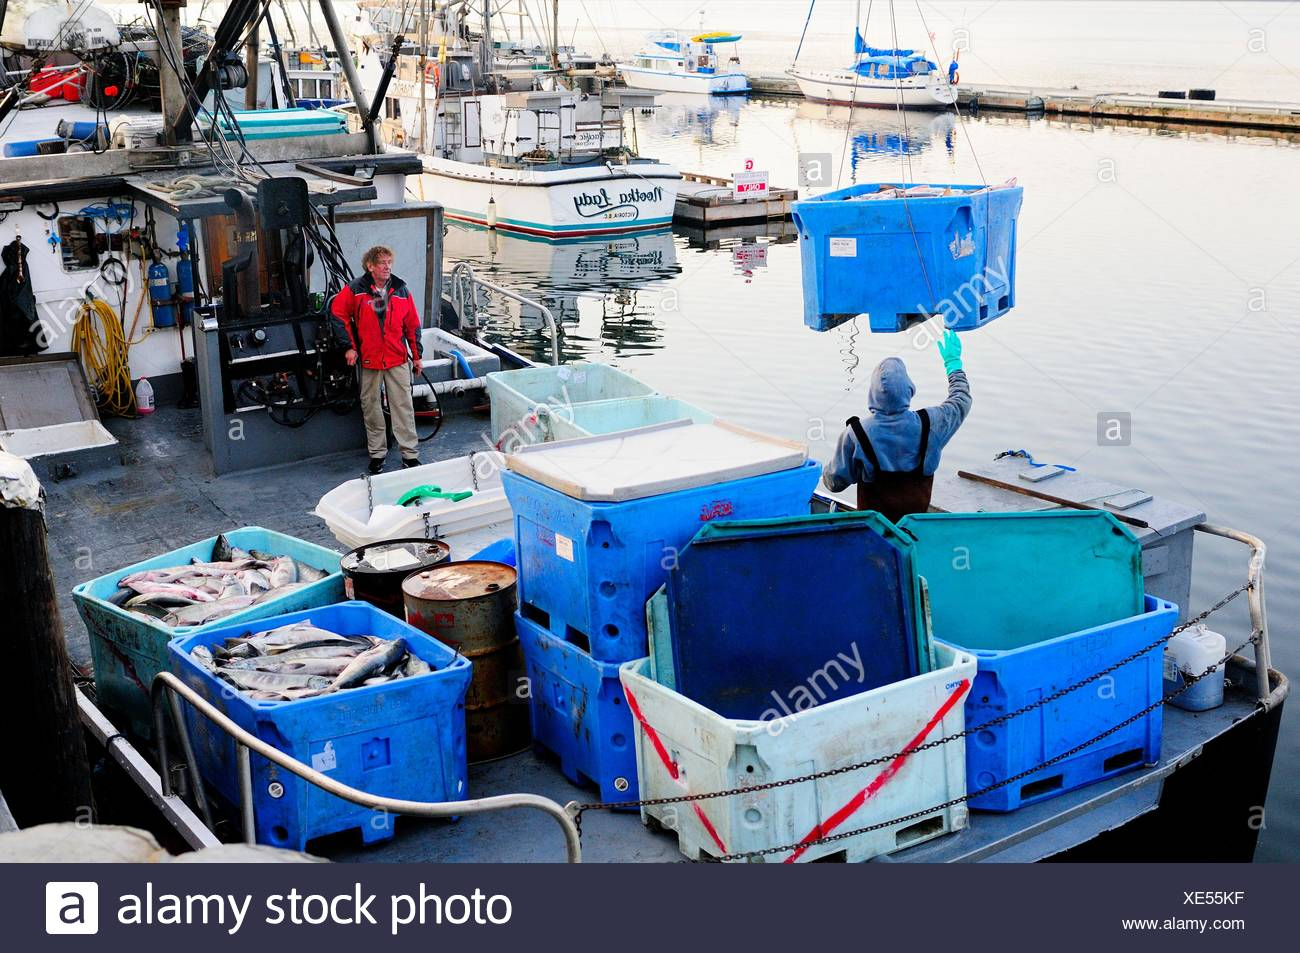 Chum salmon (Oncorhynchus keta) being moved out of the hold on a fish boat in Cowichan Bay, BC., Canada - Stock Image